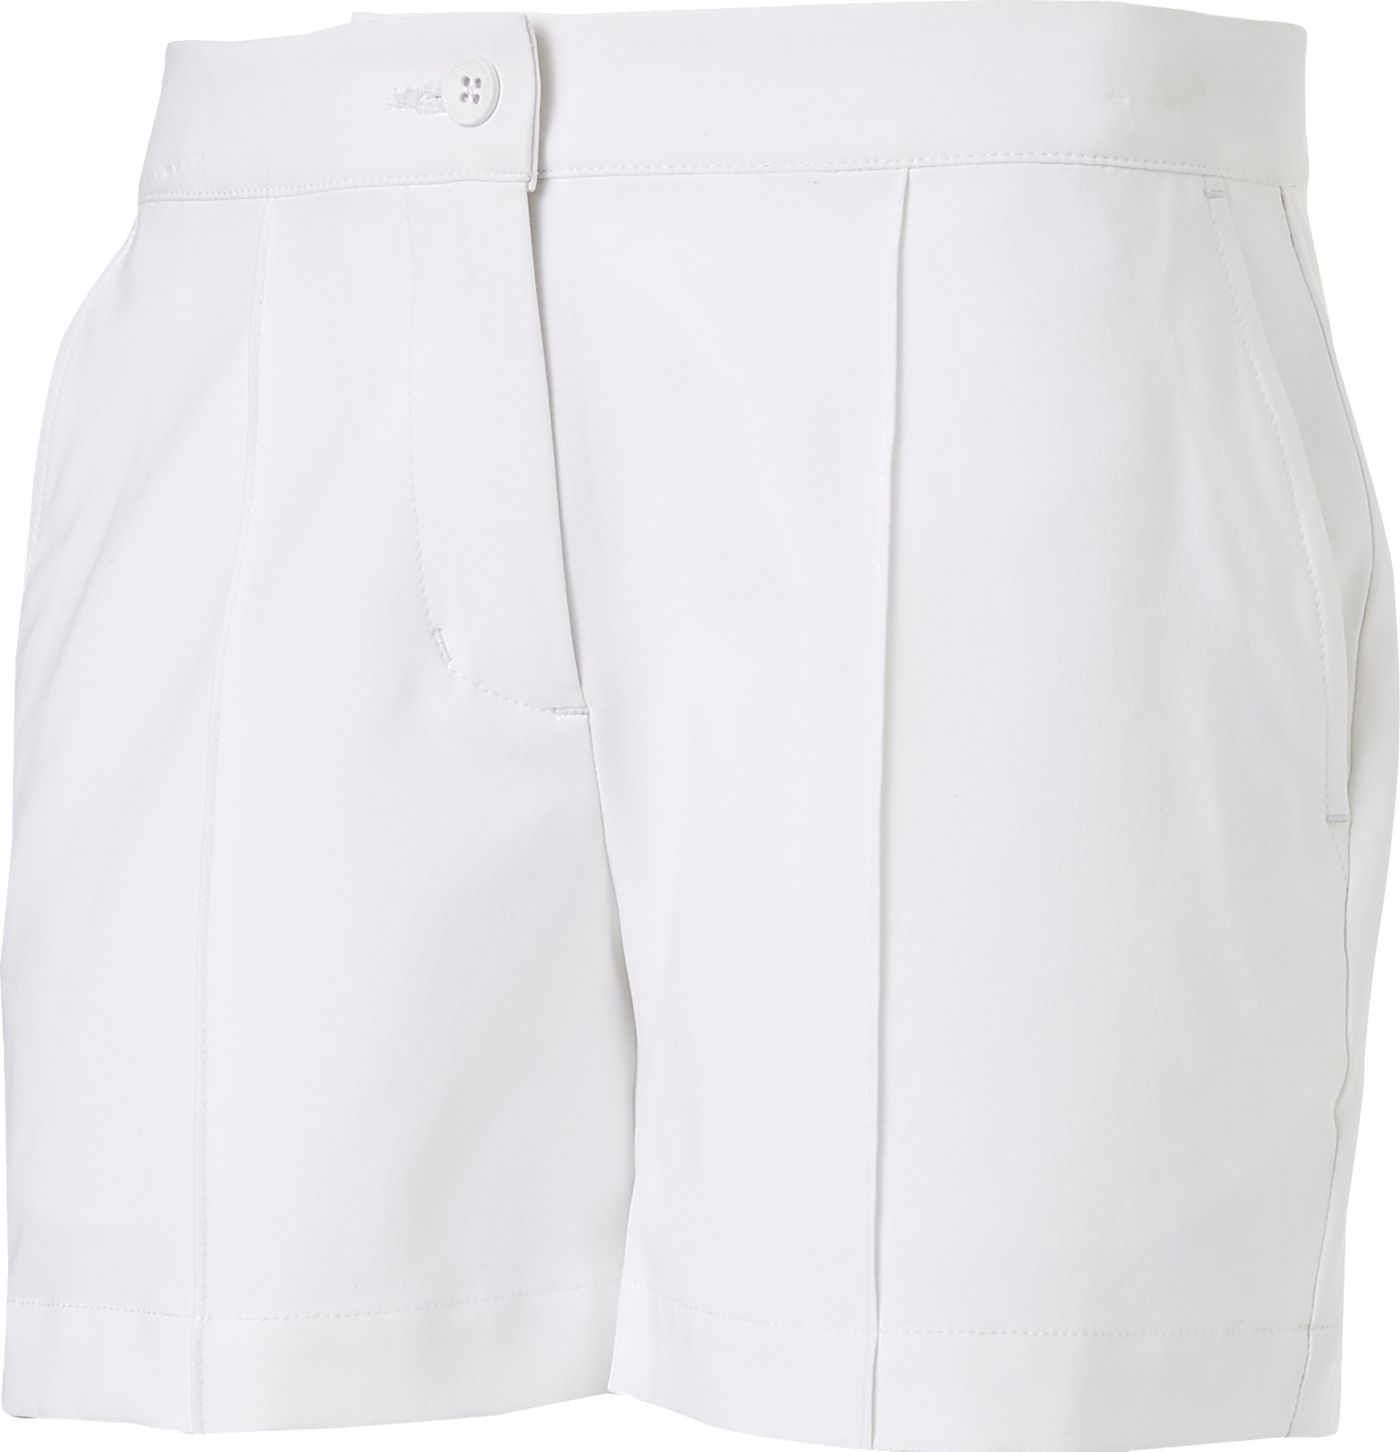 Slazenger Girls' Adjustable Waistband Shorts